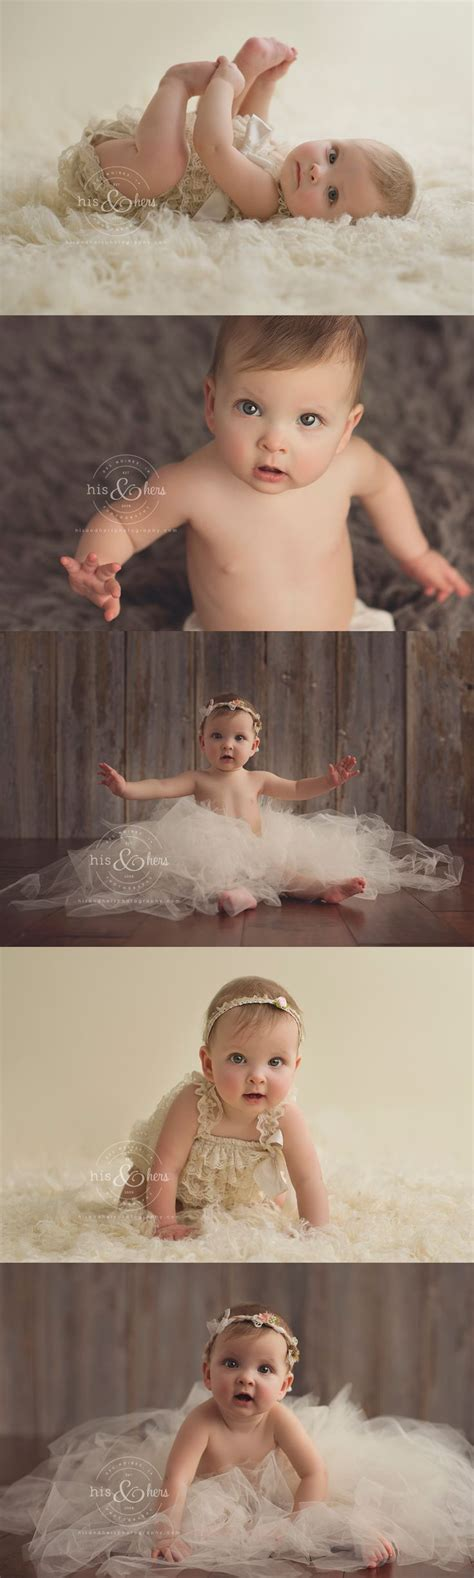 month olds ideas  pinterest  month